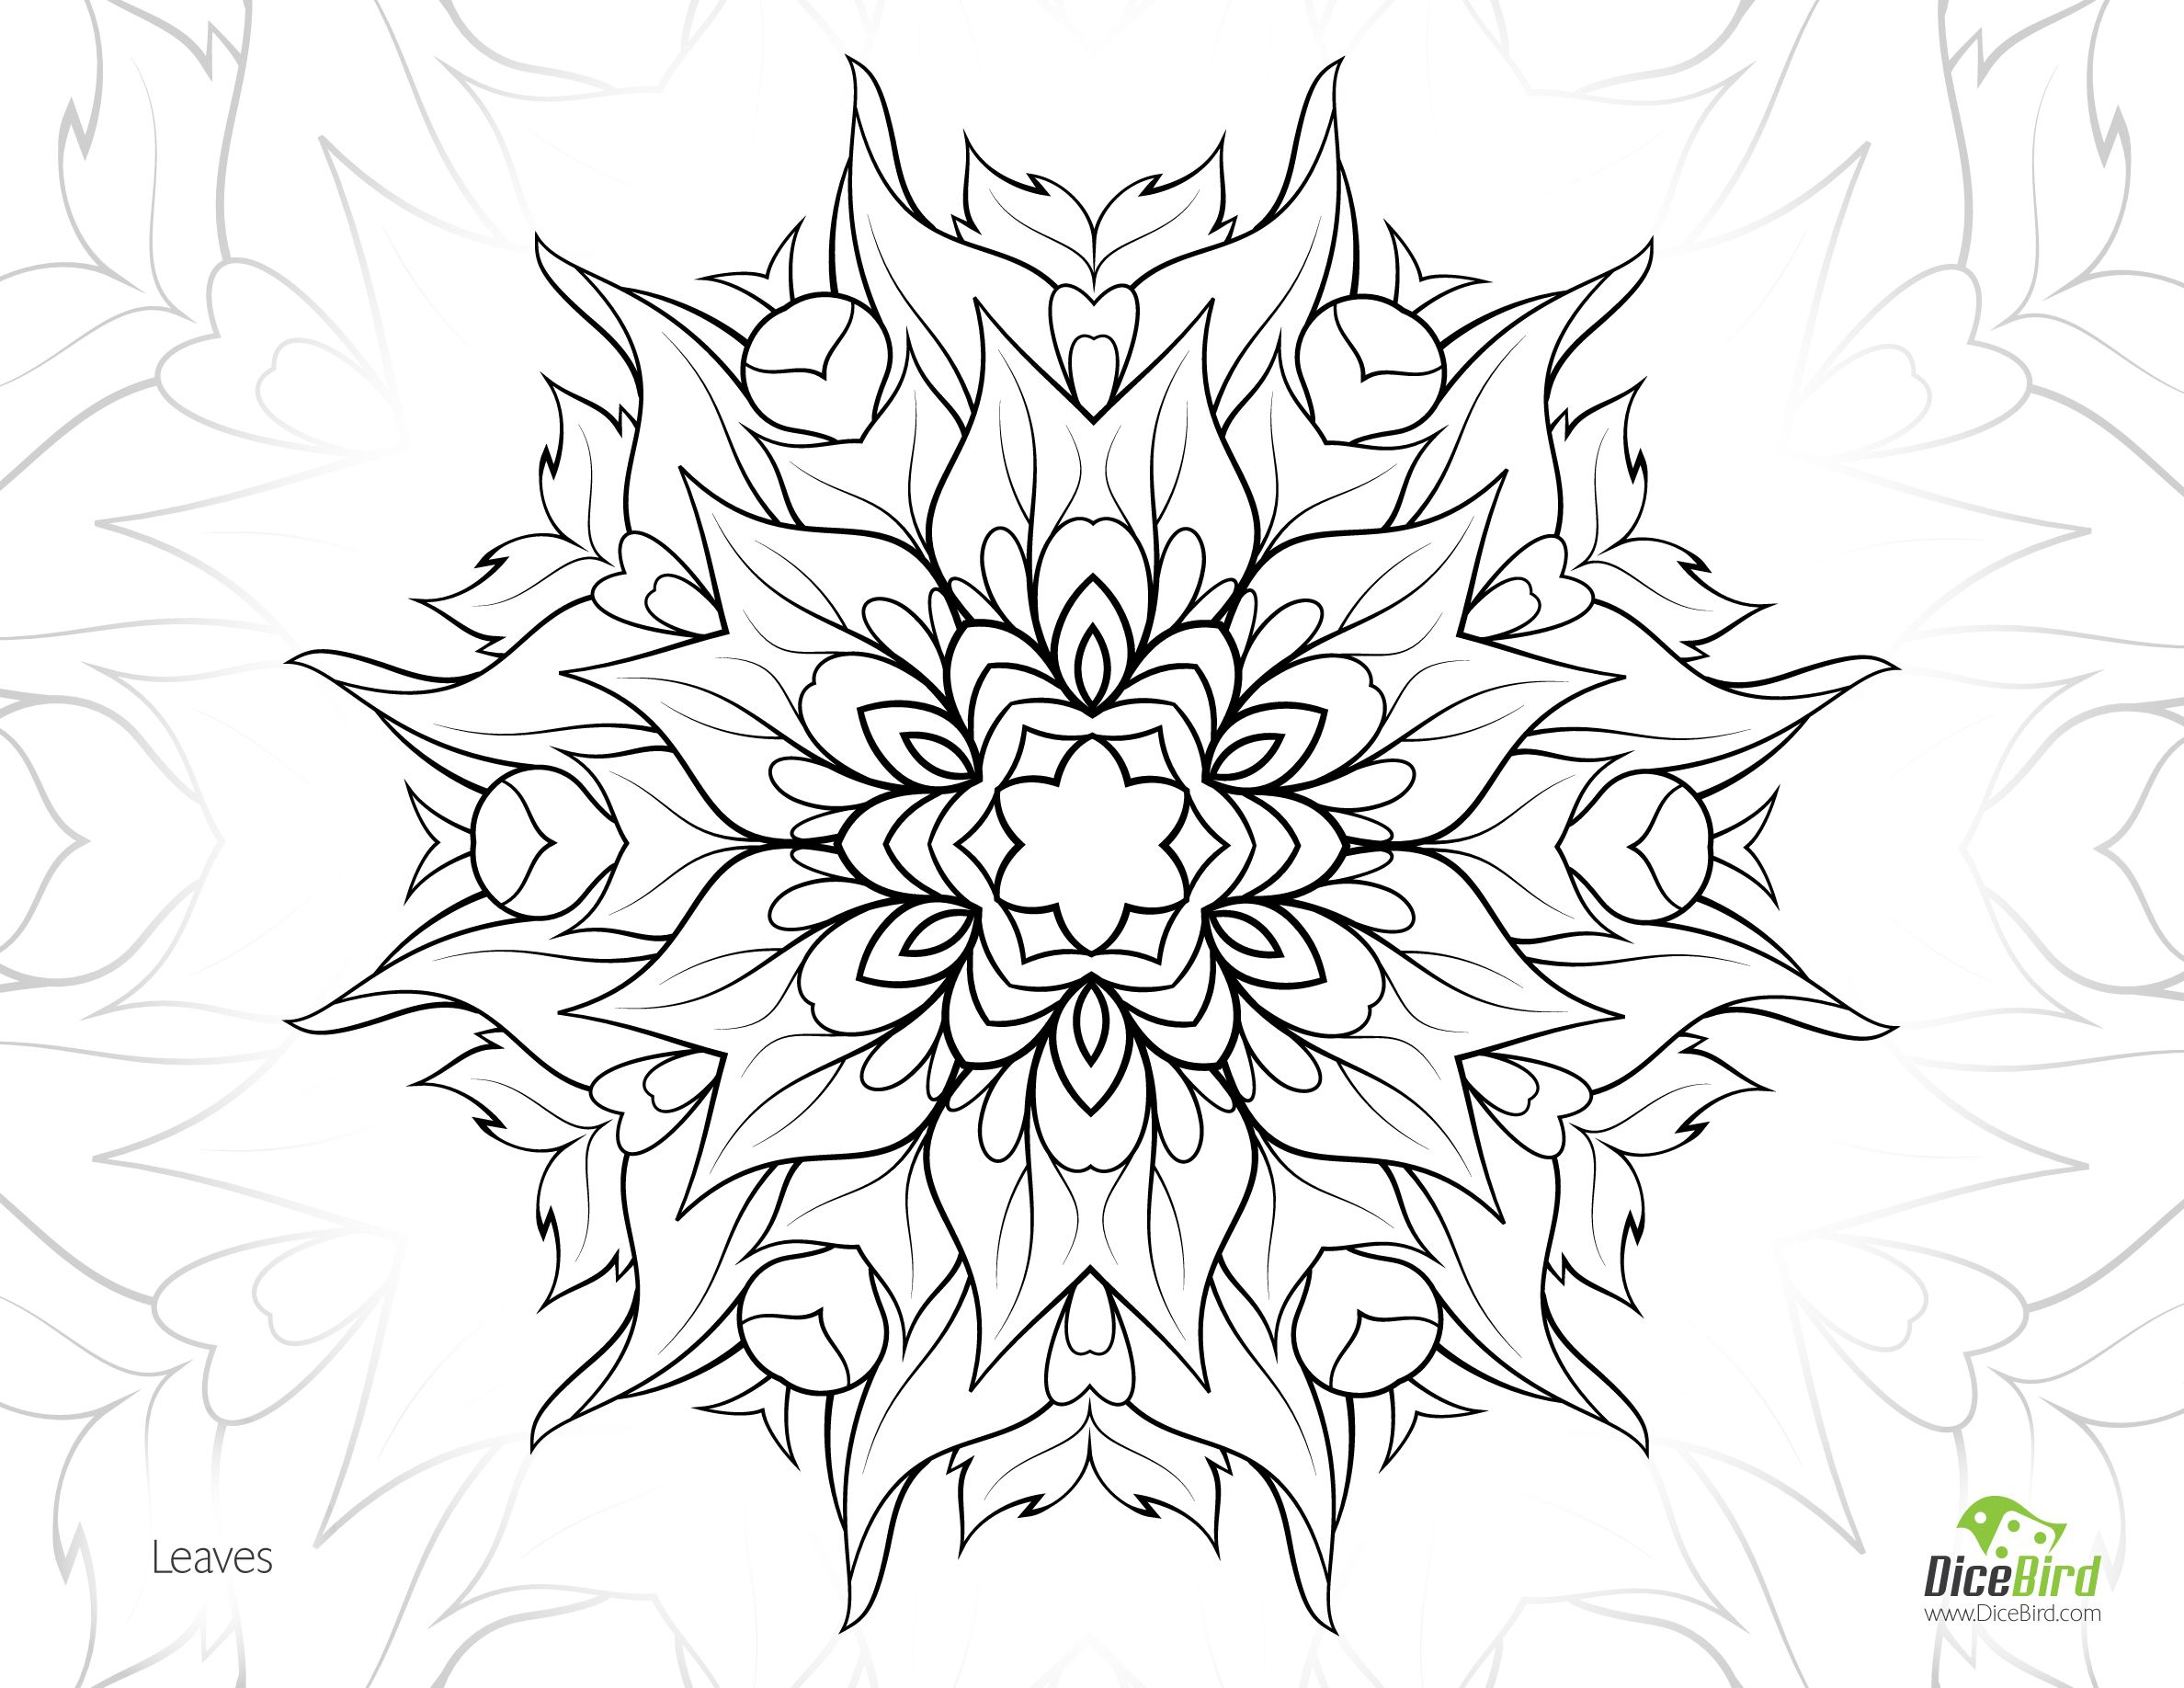 Stress relief coloring pages - Leaves Flower Free Adult Printable Mandala Colouring Page